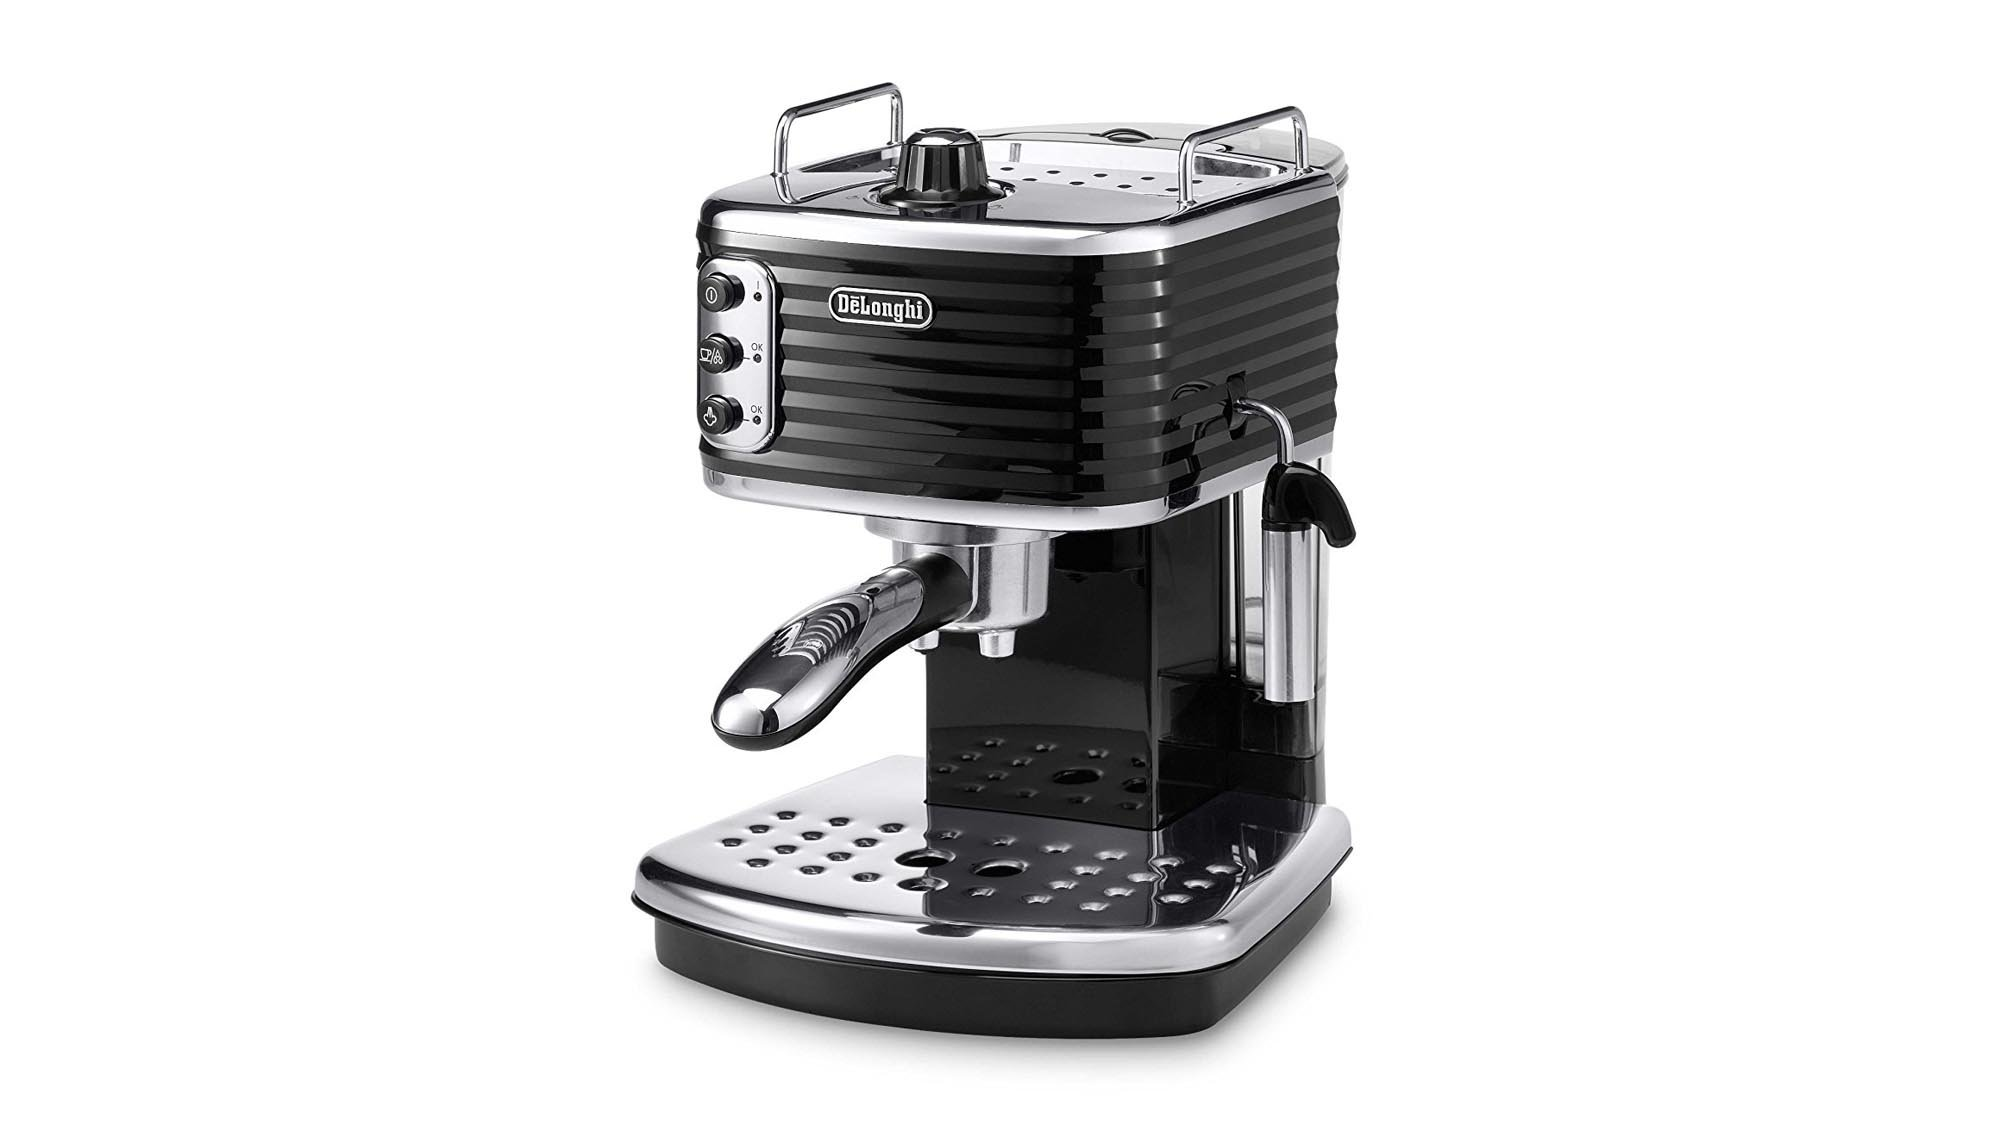 Delonghi Ecp3531 Coffee Maker Daftar Harga Terbaru Dan Terlengkap Icm 14011w Scultura Machine Review Great Quality Espresso For Sensible Money Expert